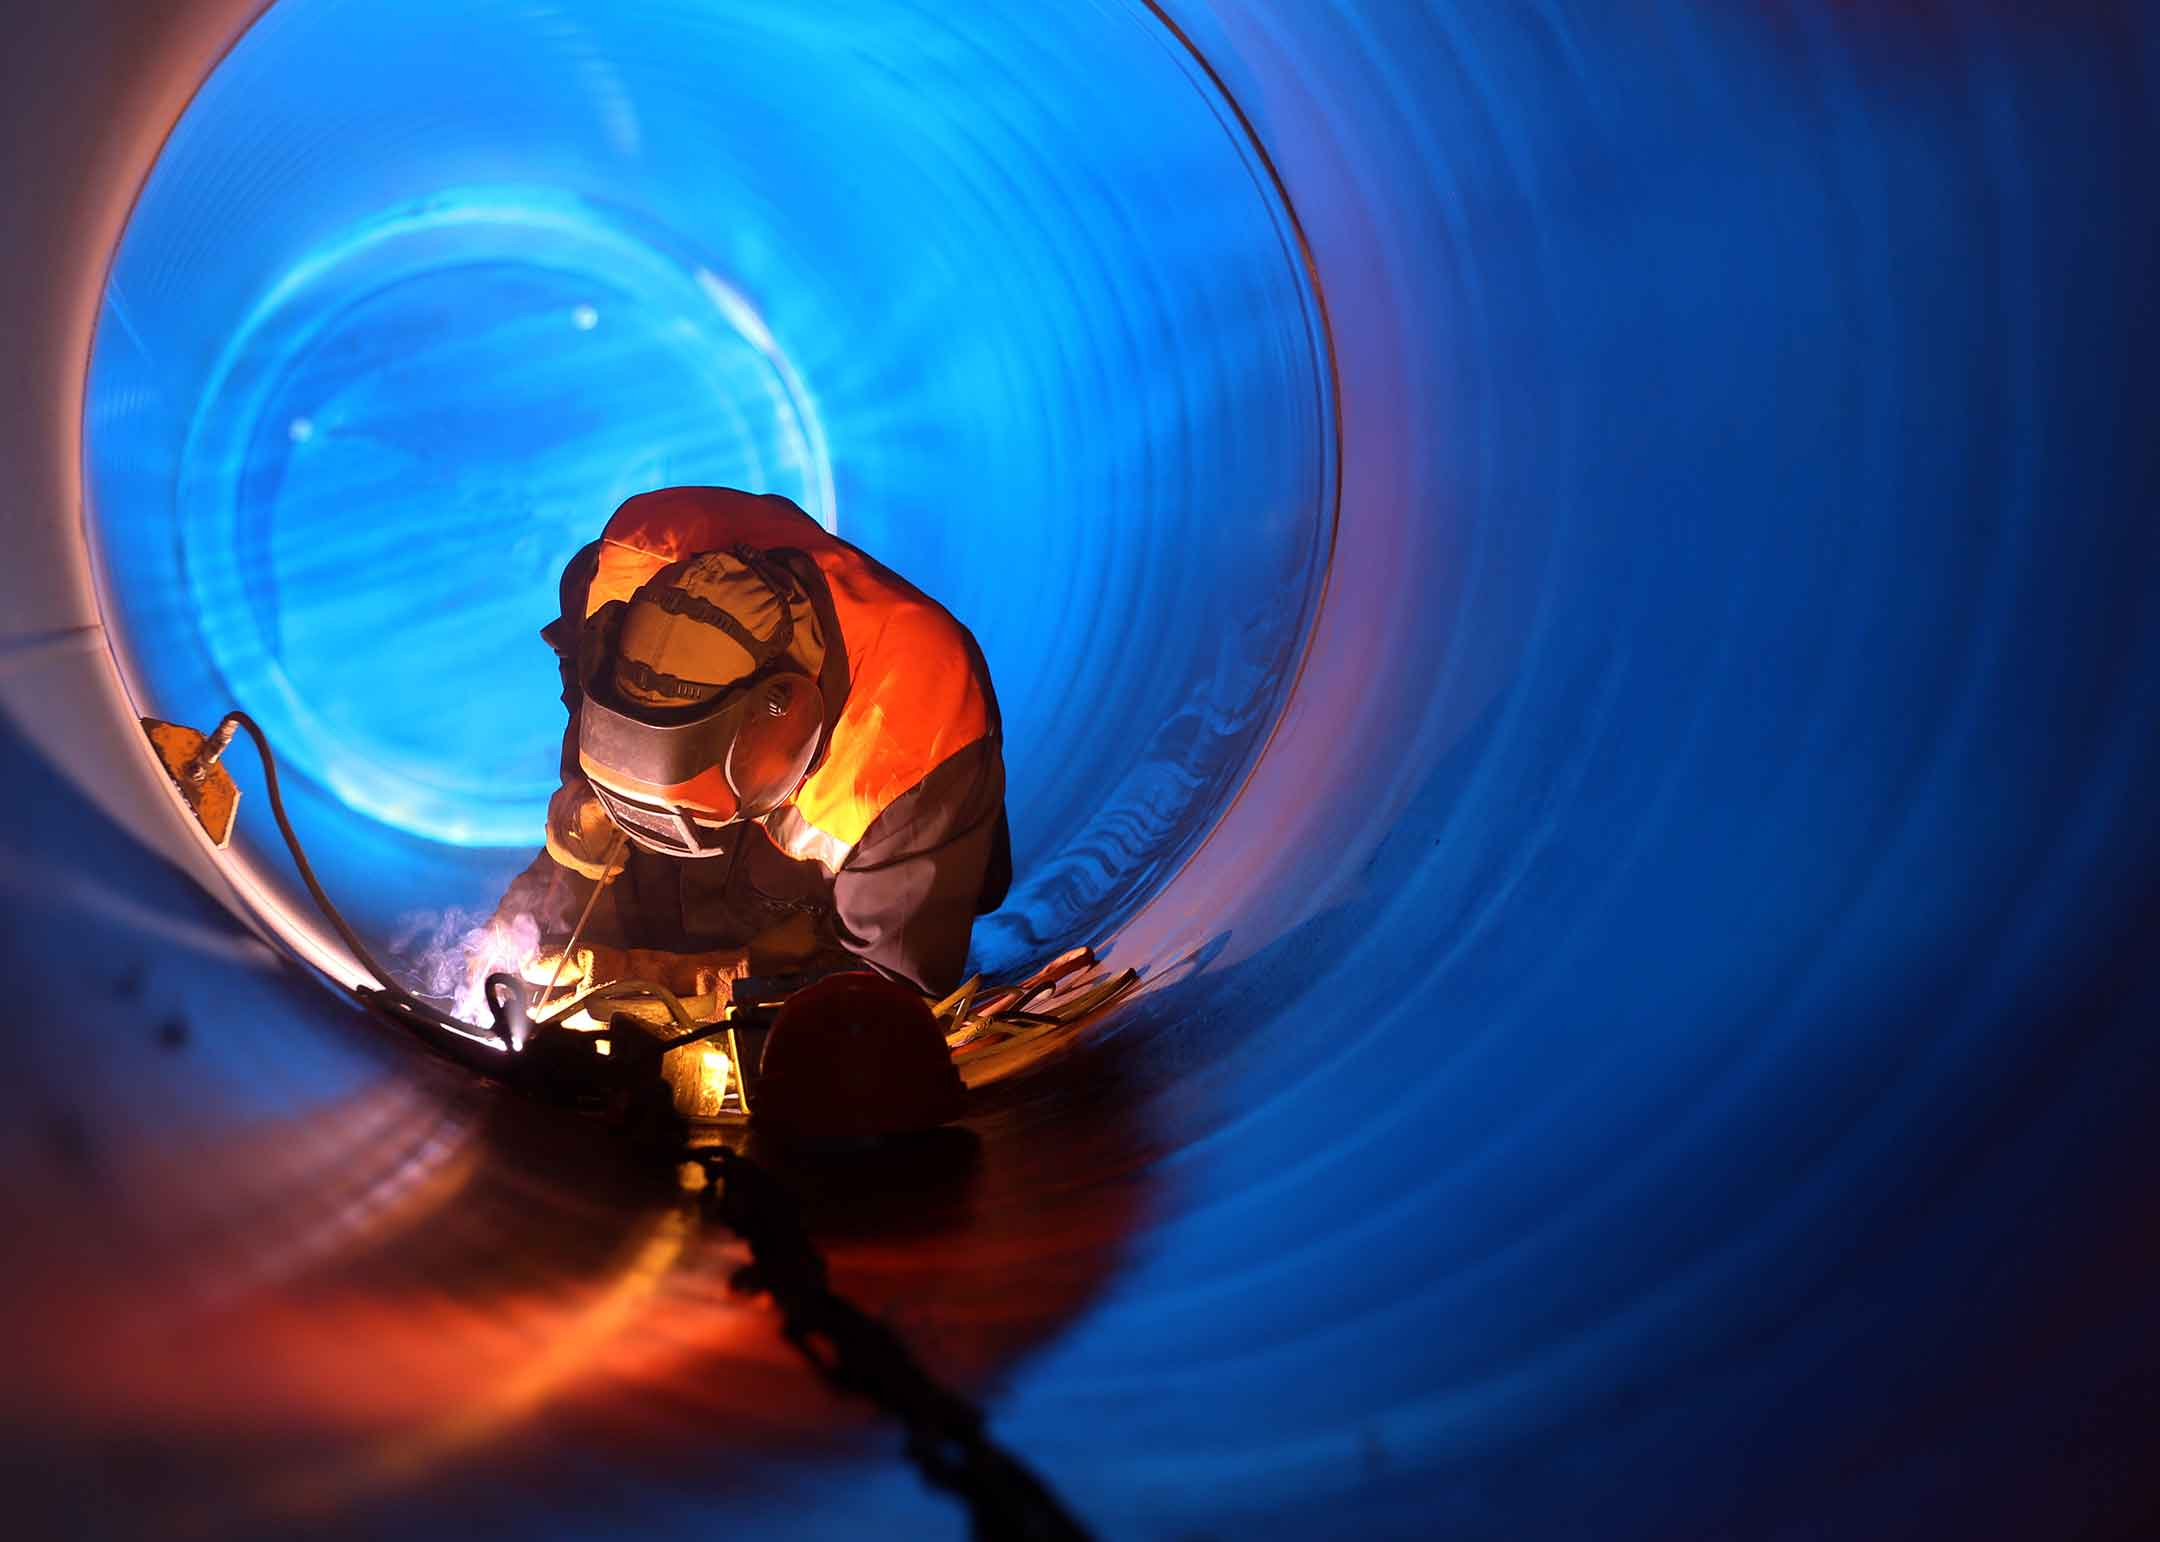 A person welding in a large pipe